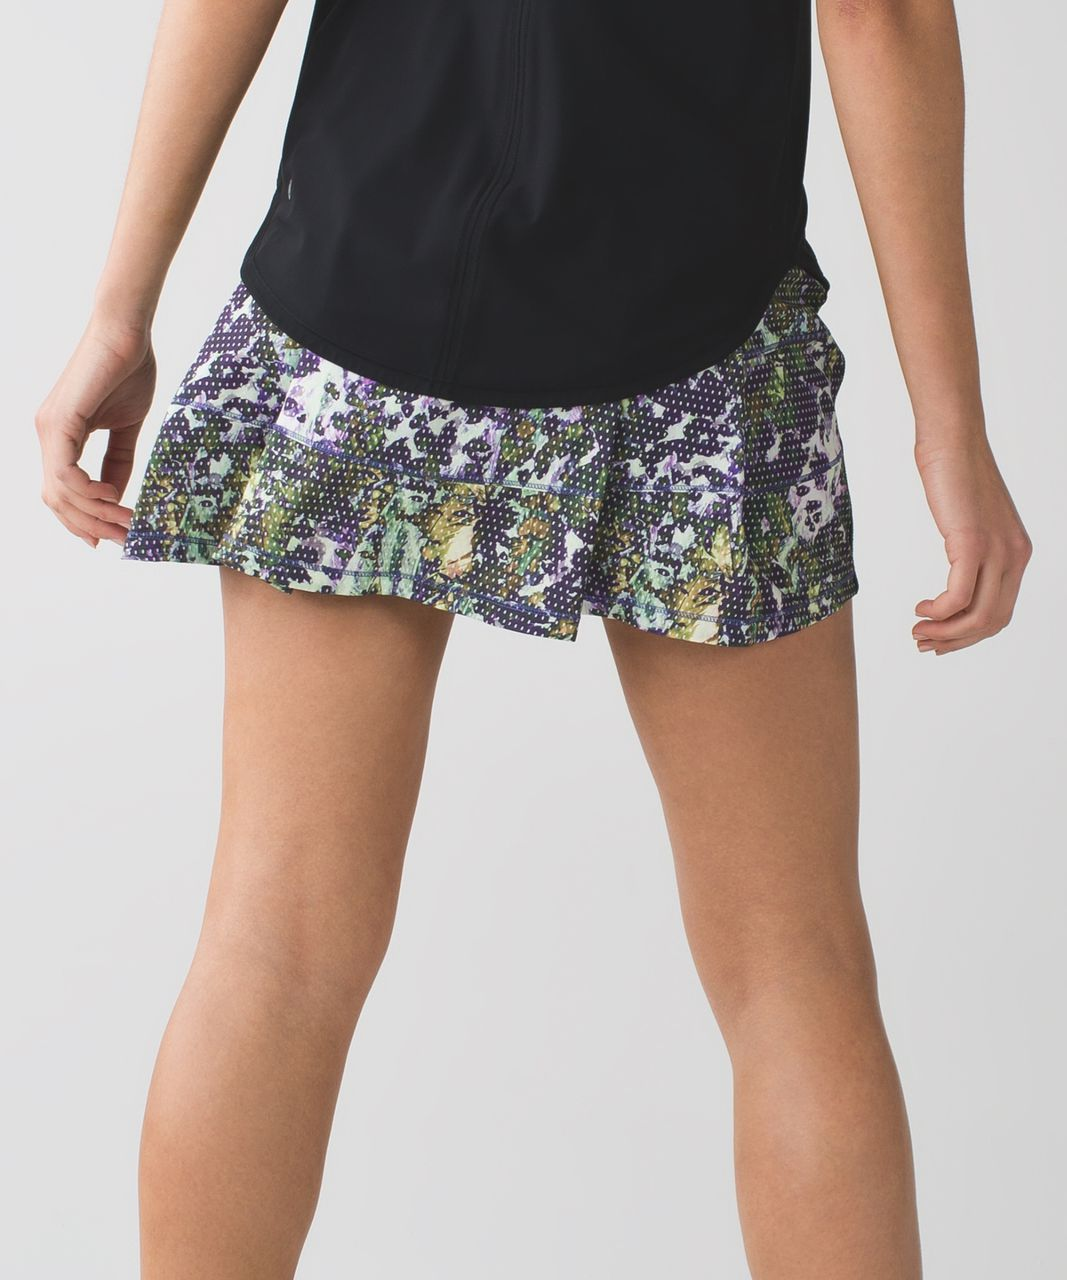 Lululemon Pace Rival Skirt II *4-way Stretch (Tall) - Floral Sport White Multi / Black